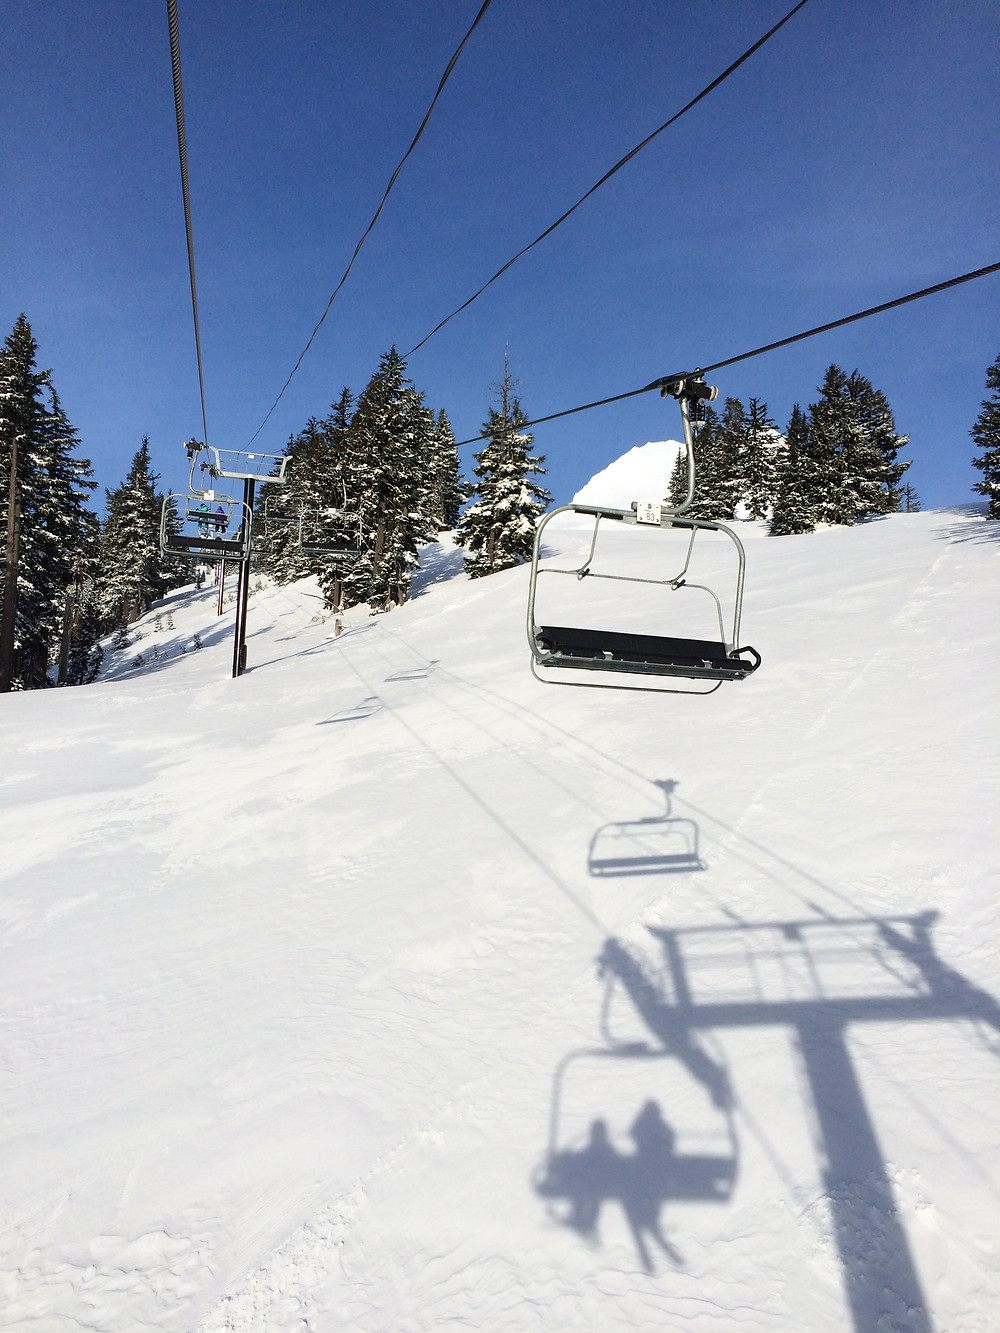 The magic of being first chair on a blue bird powder day with my son.